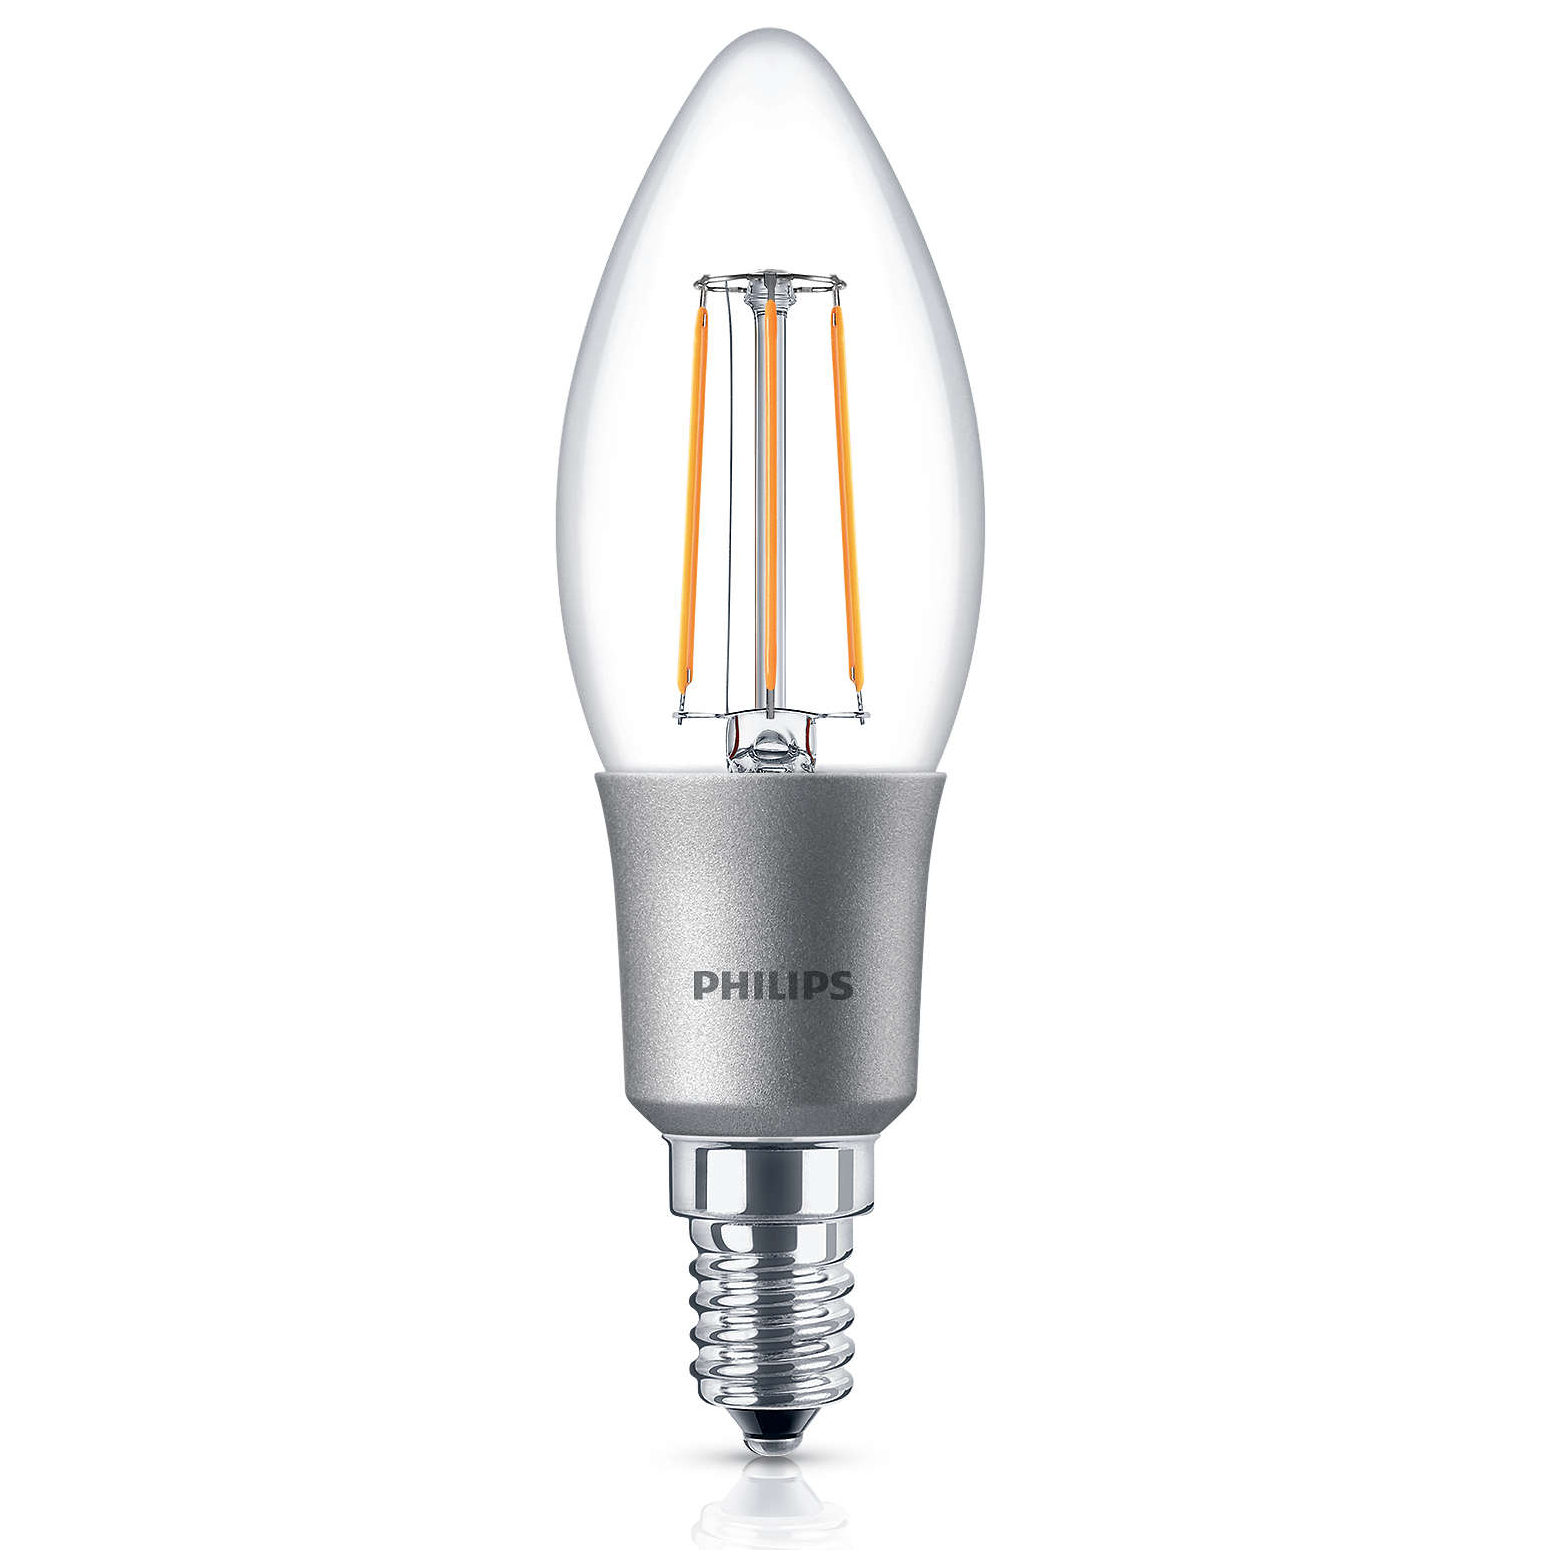 4x philips led 40w dimmable e14 edison warm white candle light bulbs lamps 470lm ebay. Black Bedroom Furniture Sets. Home Design Ideas